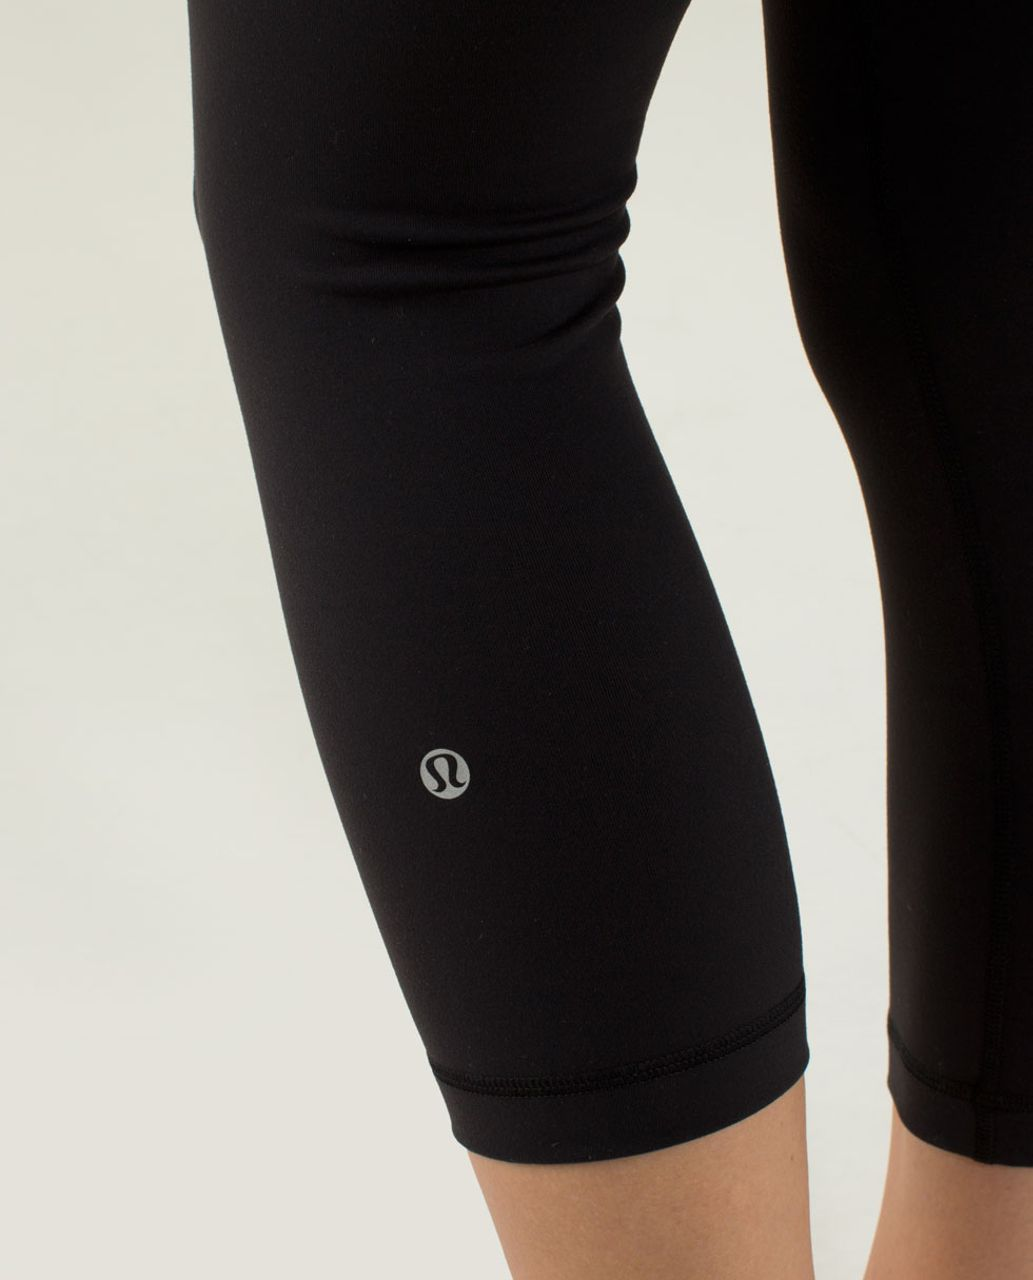 Lululemon Wunder Under Crop *Full-On Luon - Black / Quilt Winter 13-29